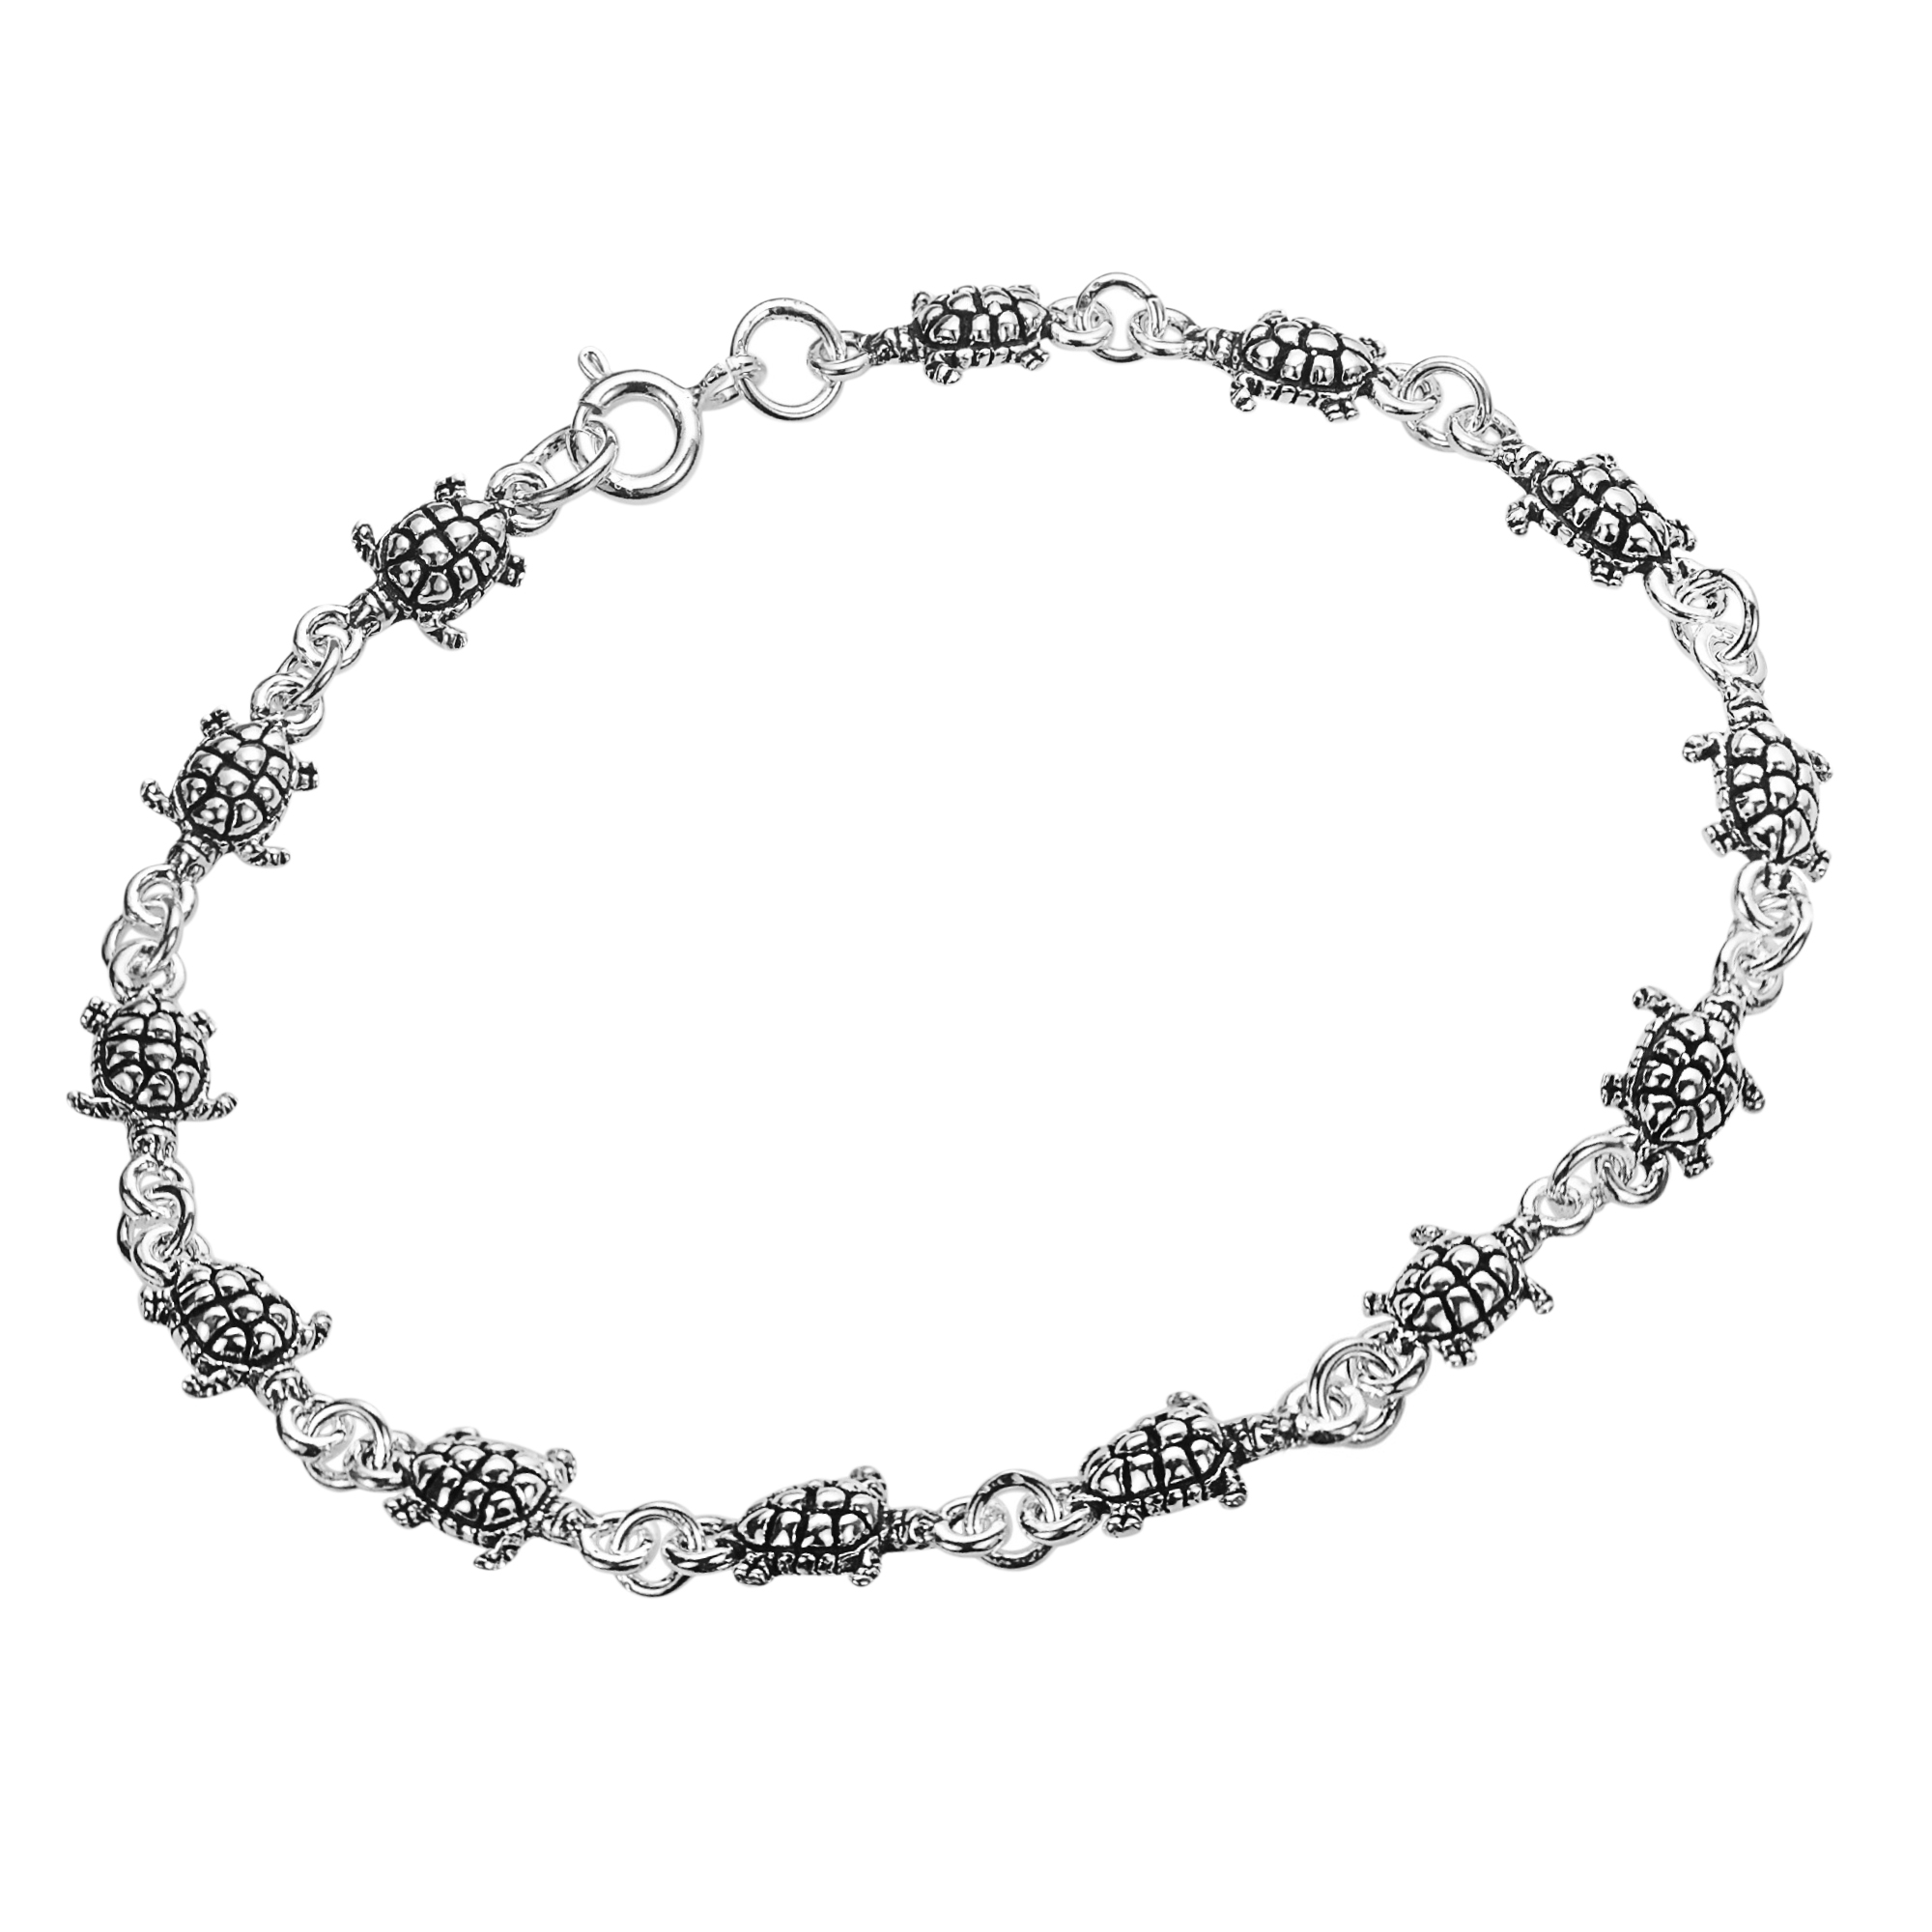 steel fashionable silver crystal stainless with bracelets product new women and men for womens vintage wholesale pendants jewelry from charm bracelet